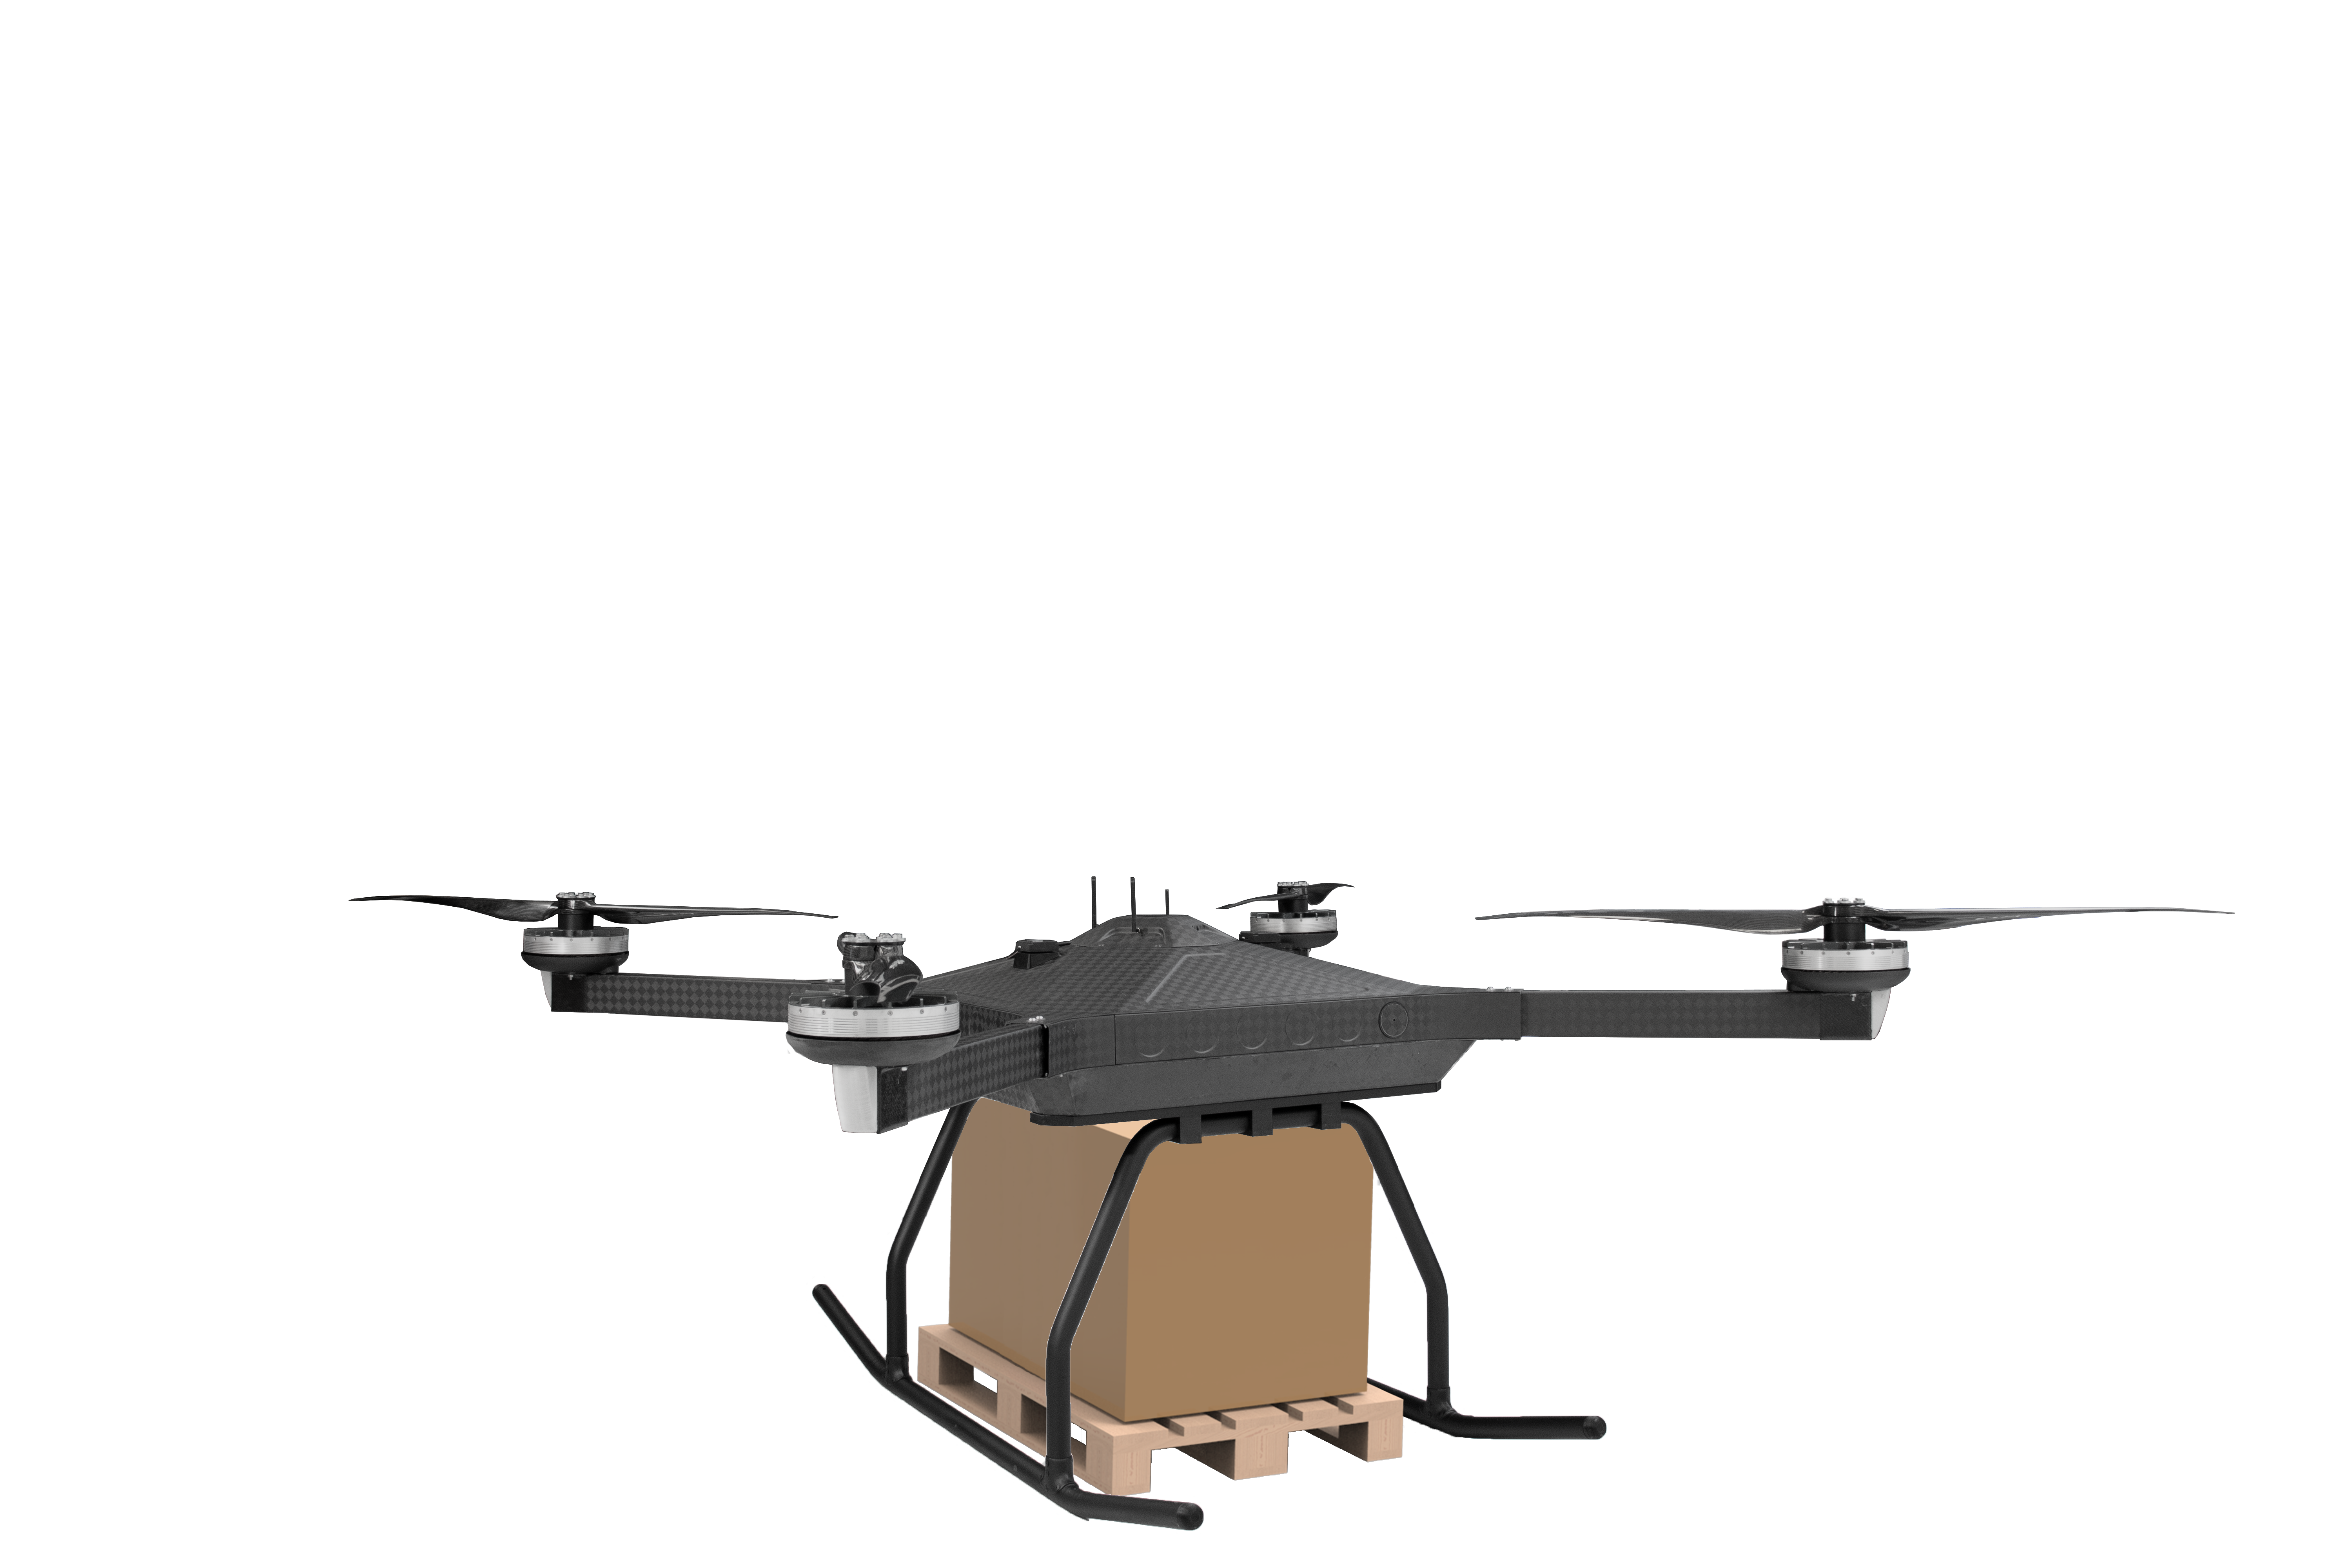 Airflights electric Quadcopter